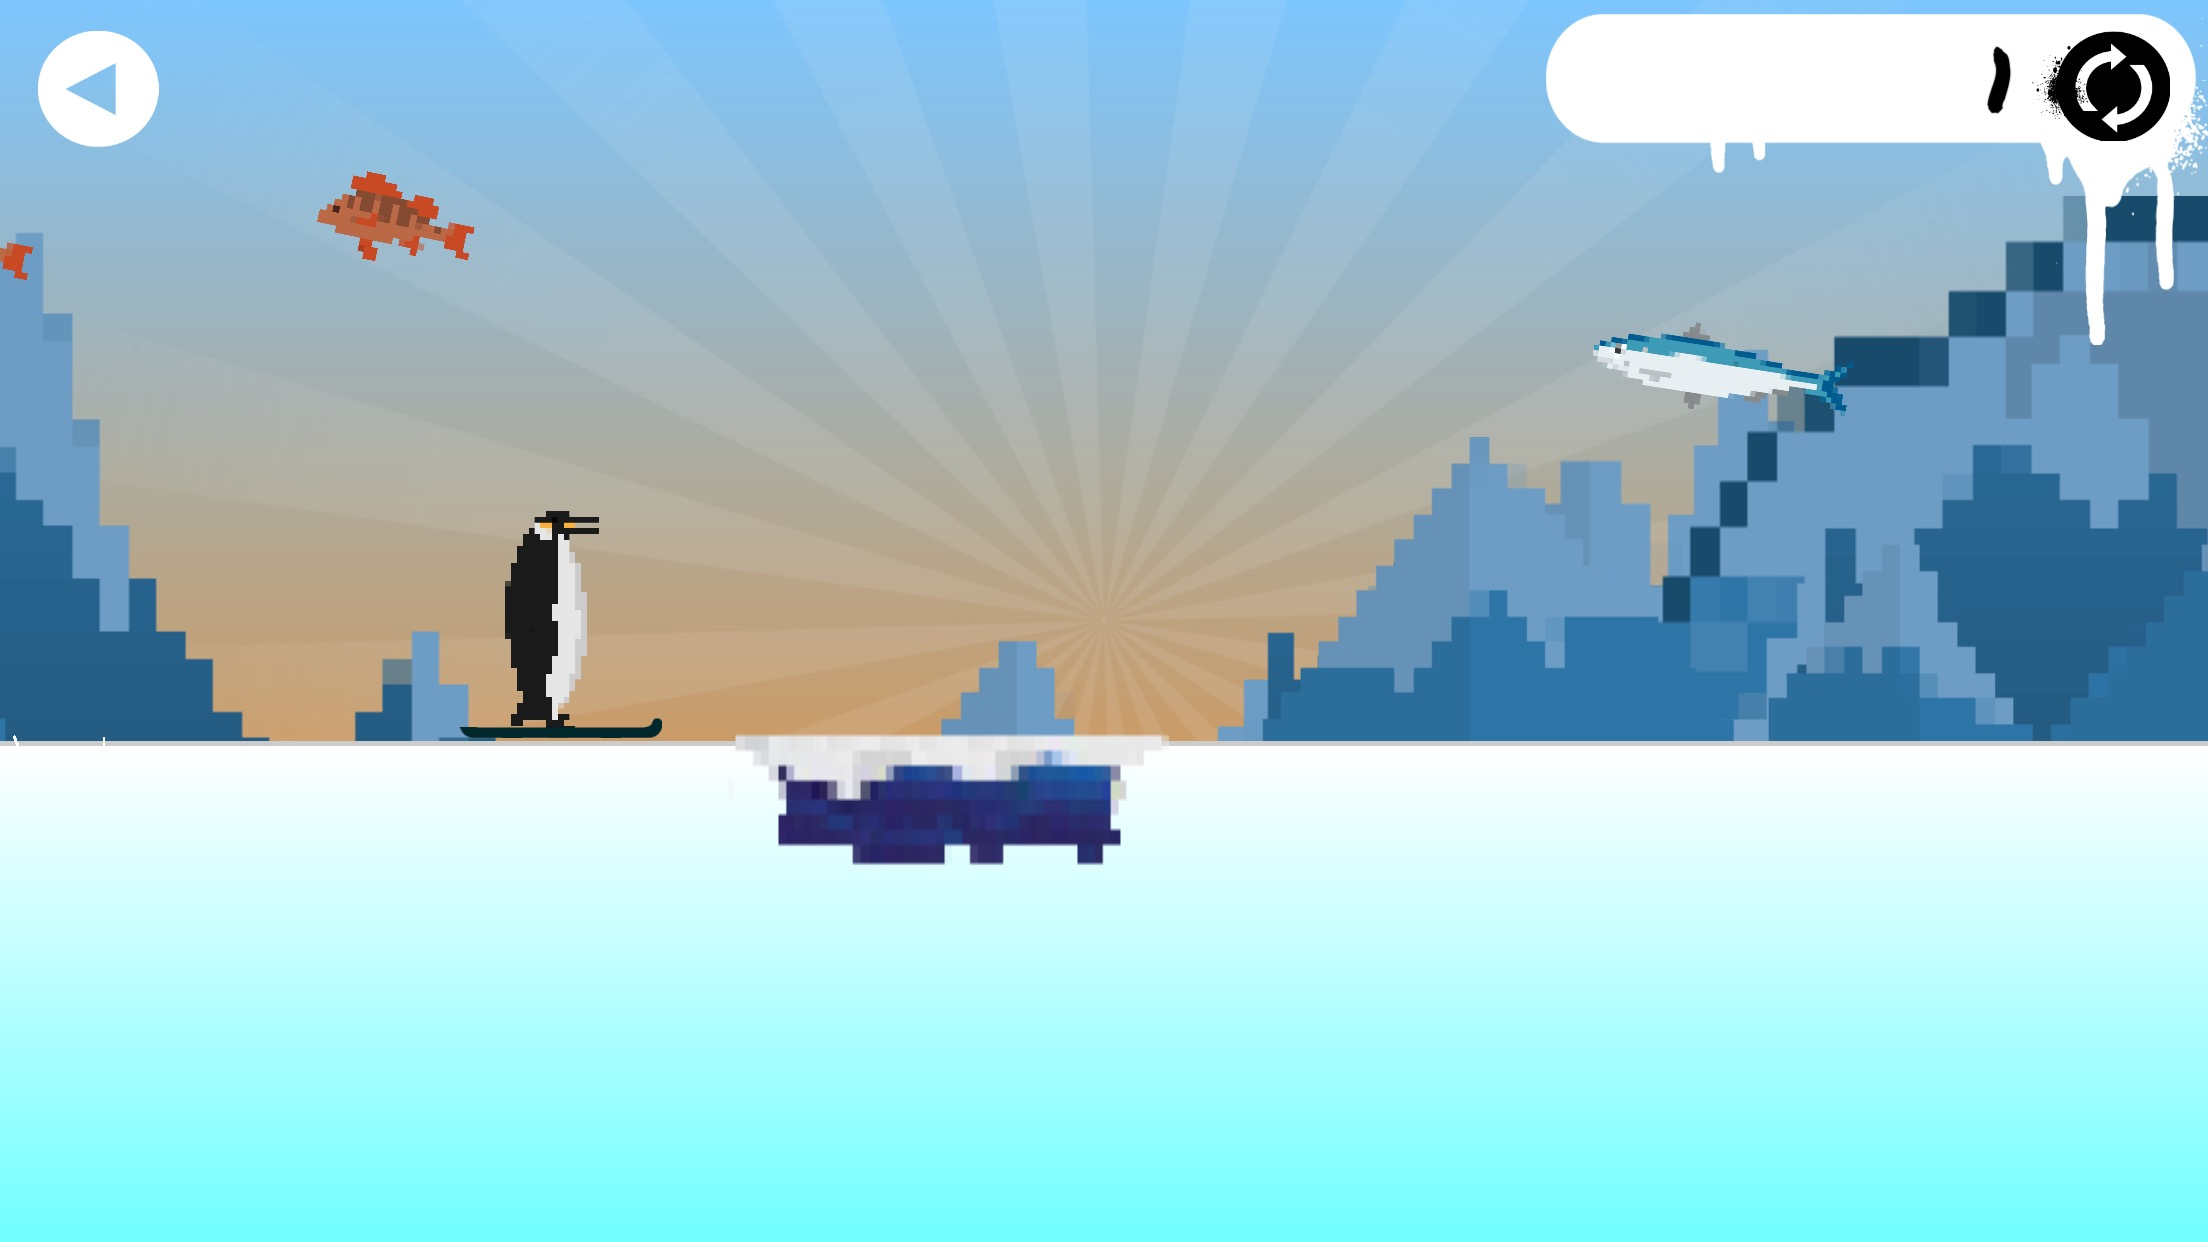 The Skiing Penguin